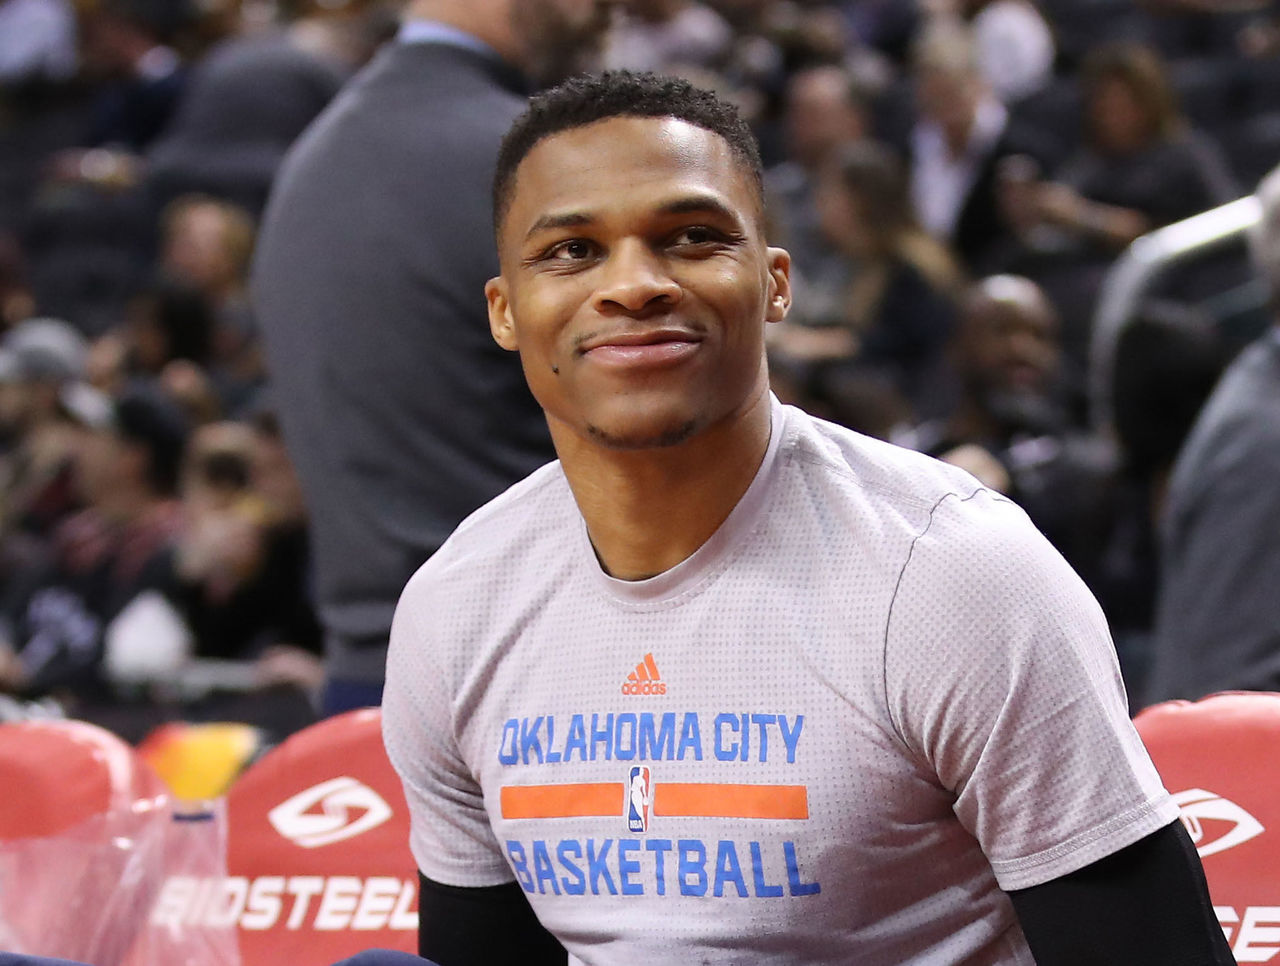 Cropped 2017 03 17t021121z 1712950159 nocid rtrmadp 3 nba oklahoma city thunder at toronto raptors